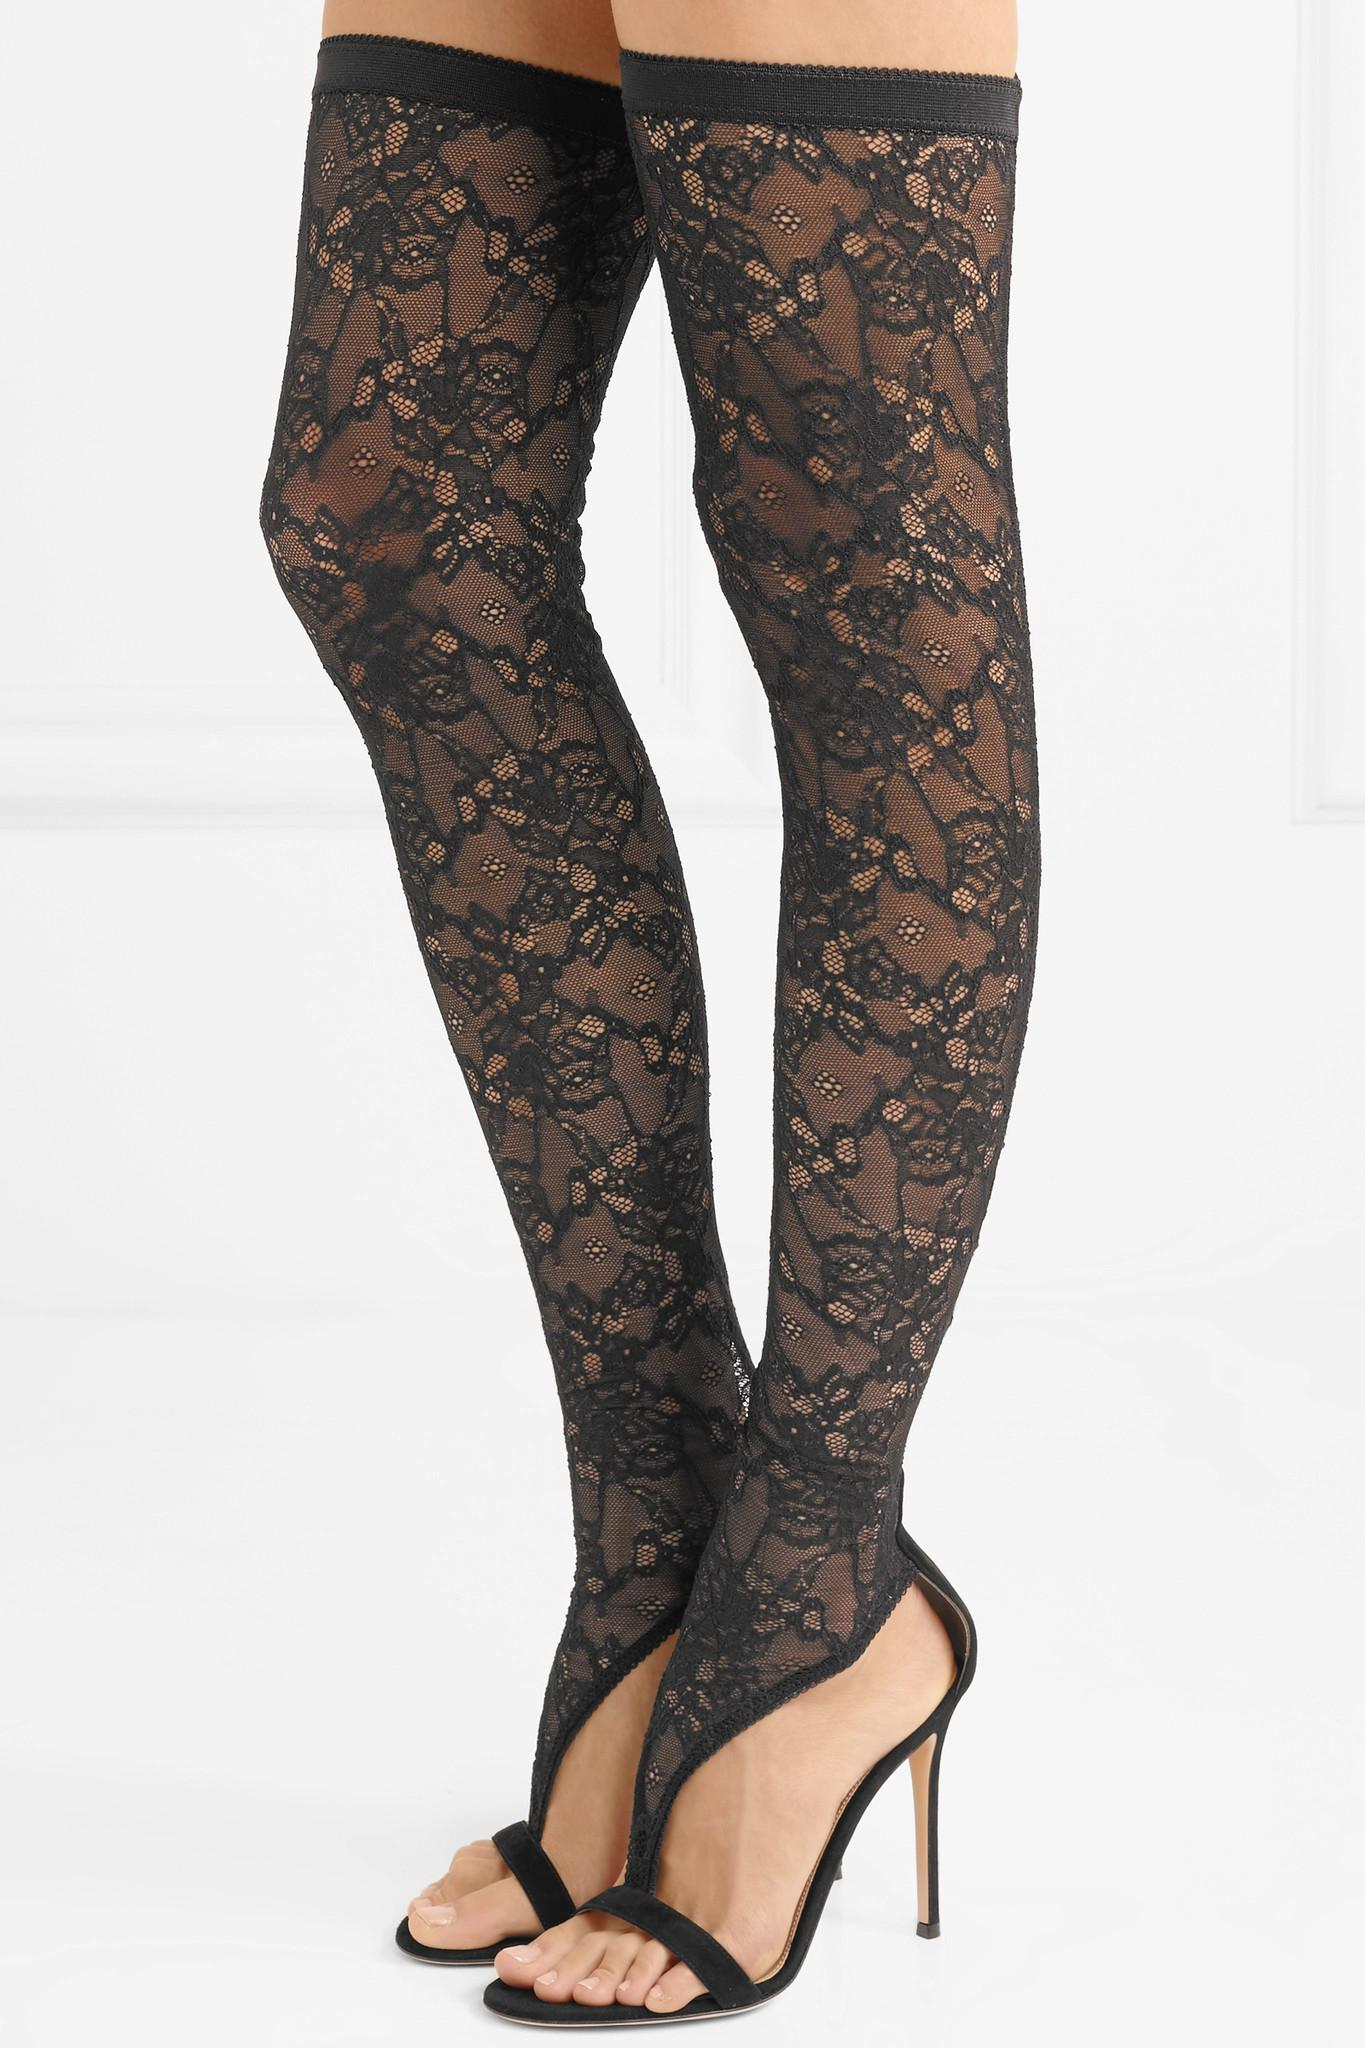 Gianvito Rossi Isabella 100 Stretch-lace And Suede Over-the-knee Boots in Black